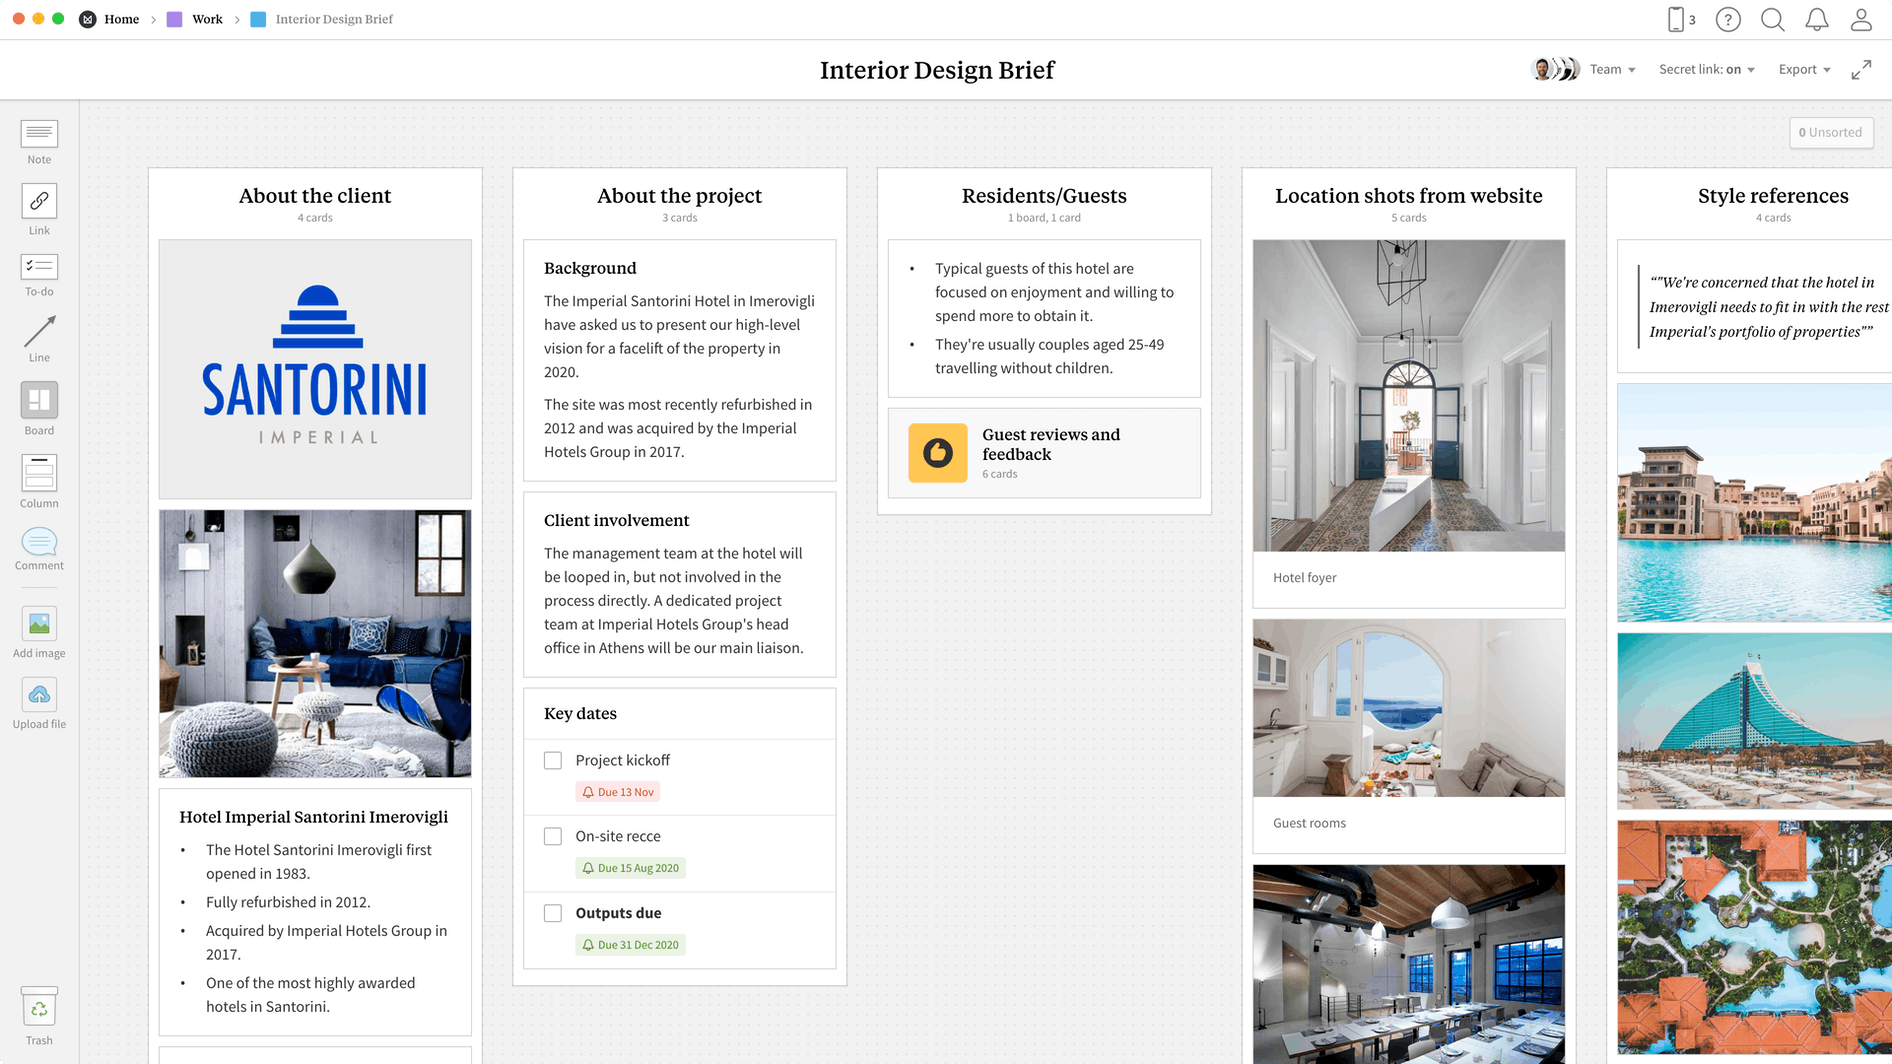 Interior Design Brief Template, within the Milanote app